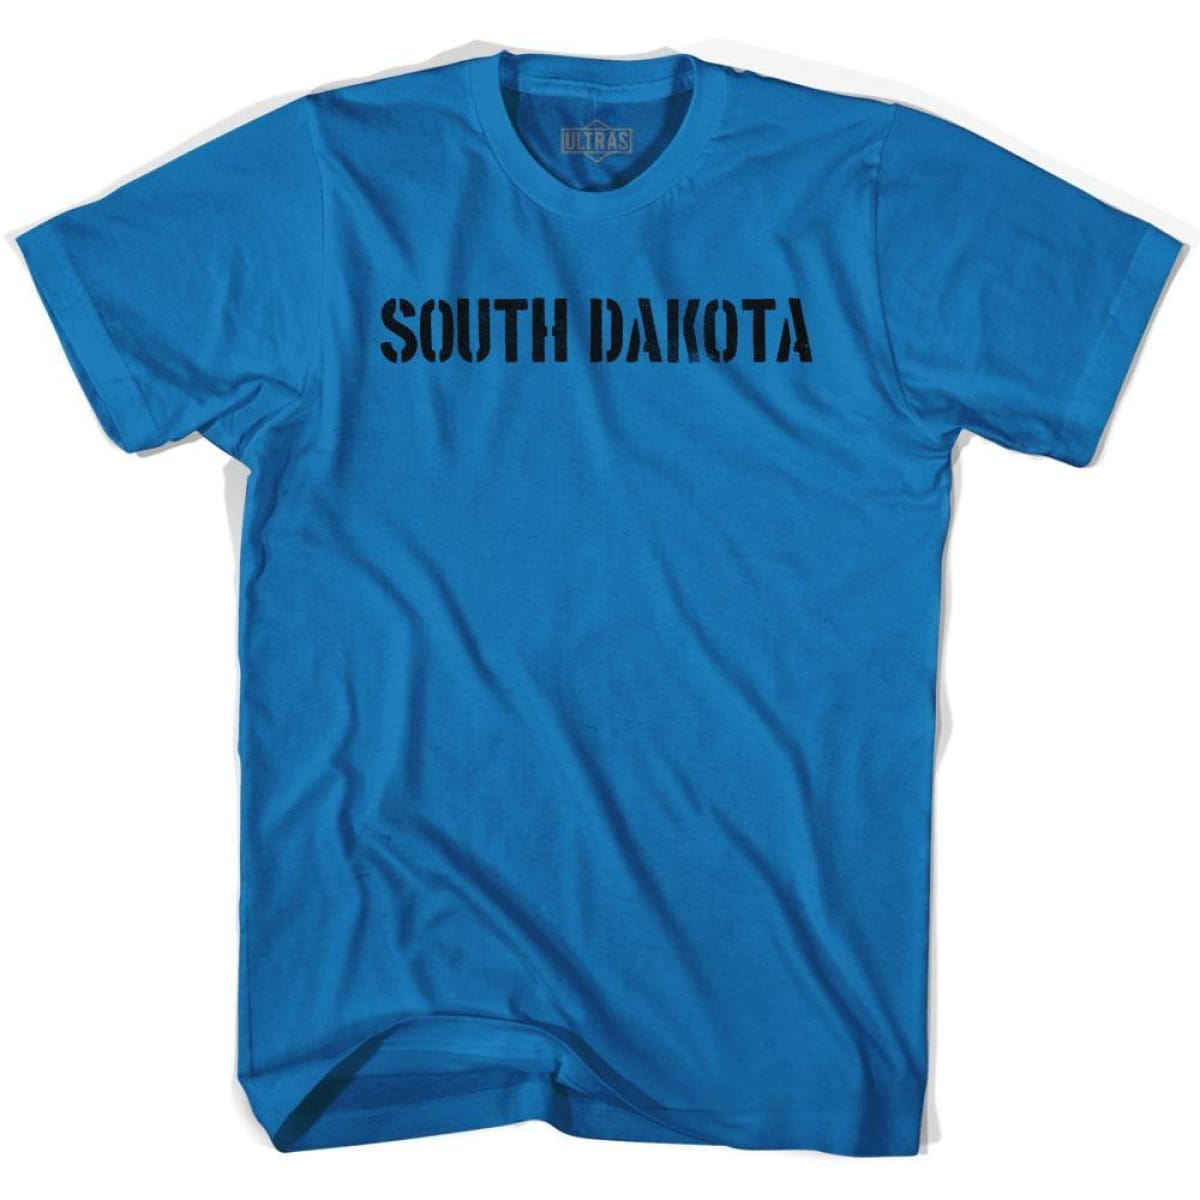 South Dakota State Stencil Adult Cotton T-shirt - Royal / Adult Small - Stencil State